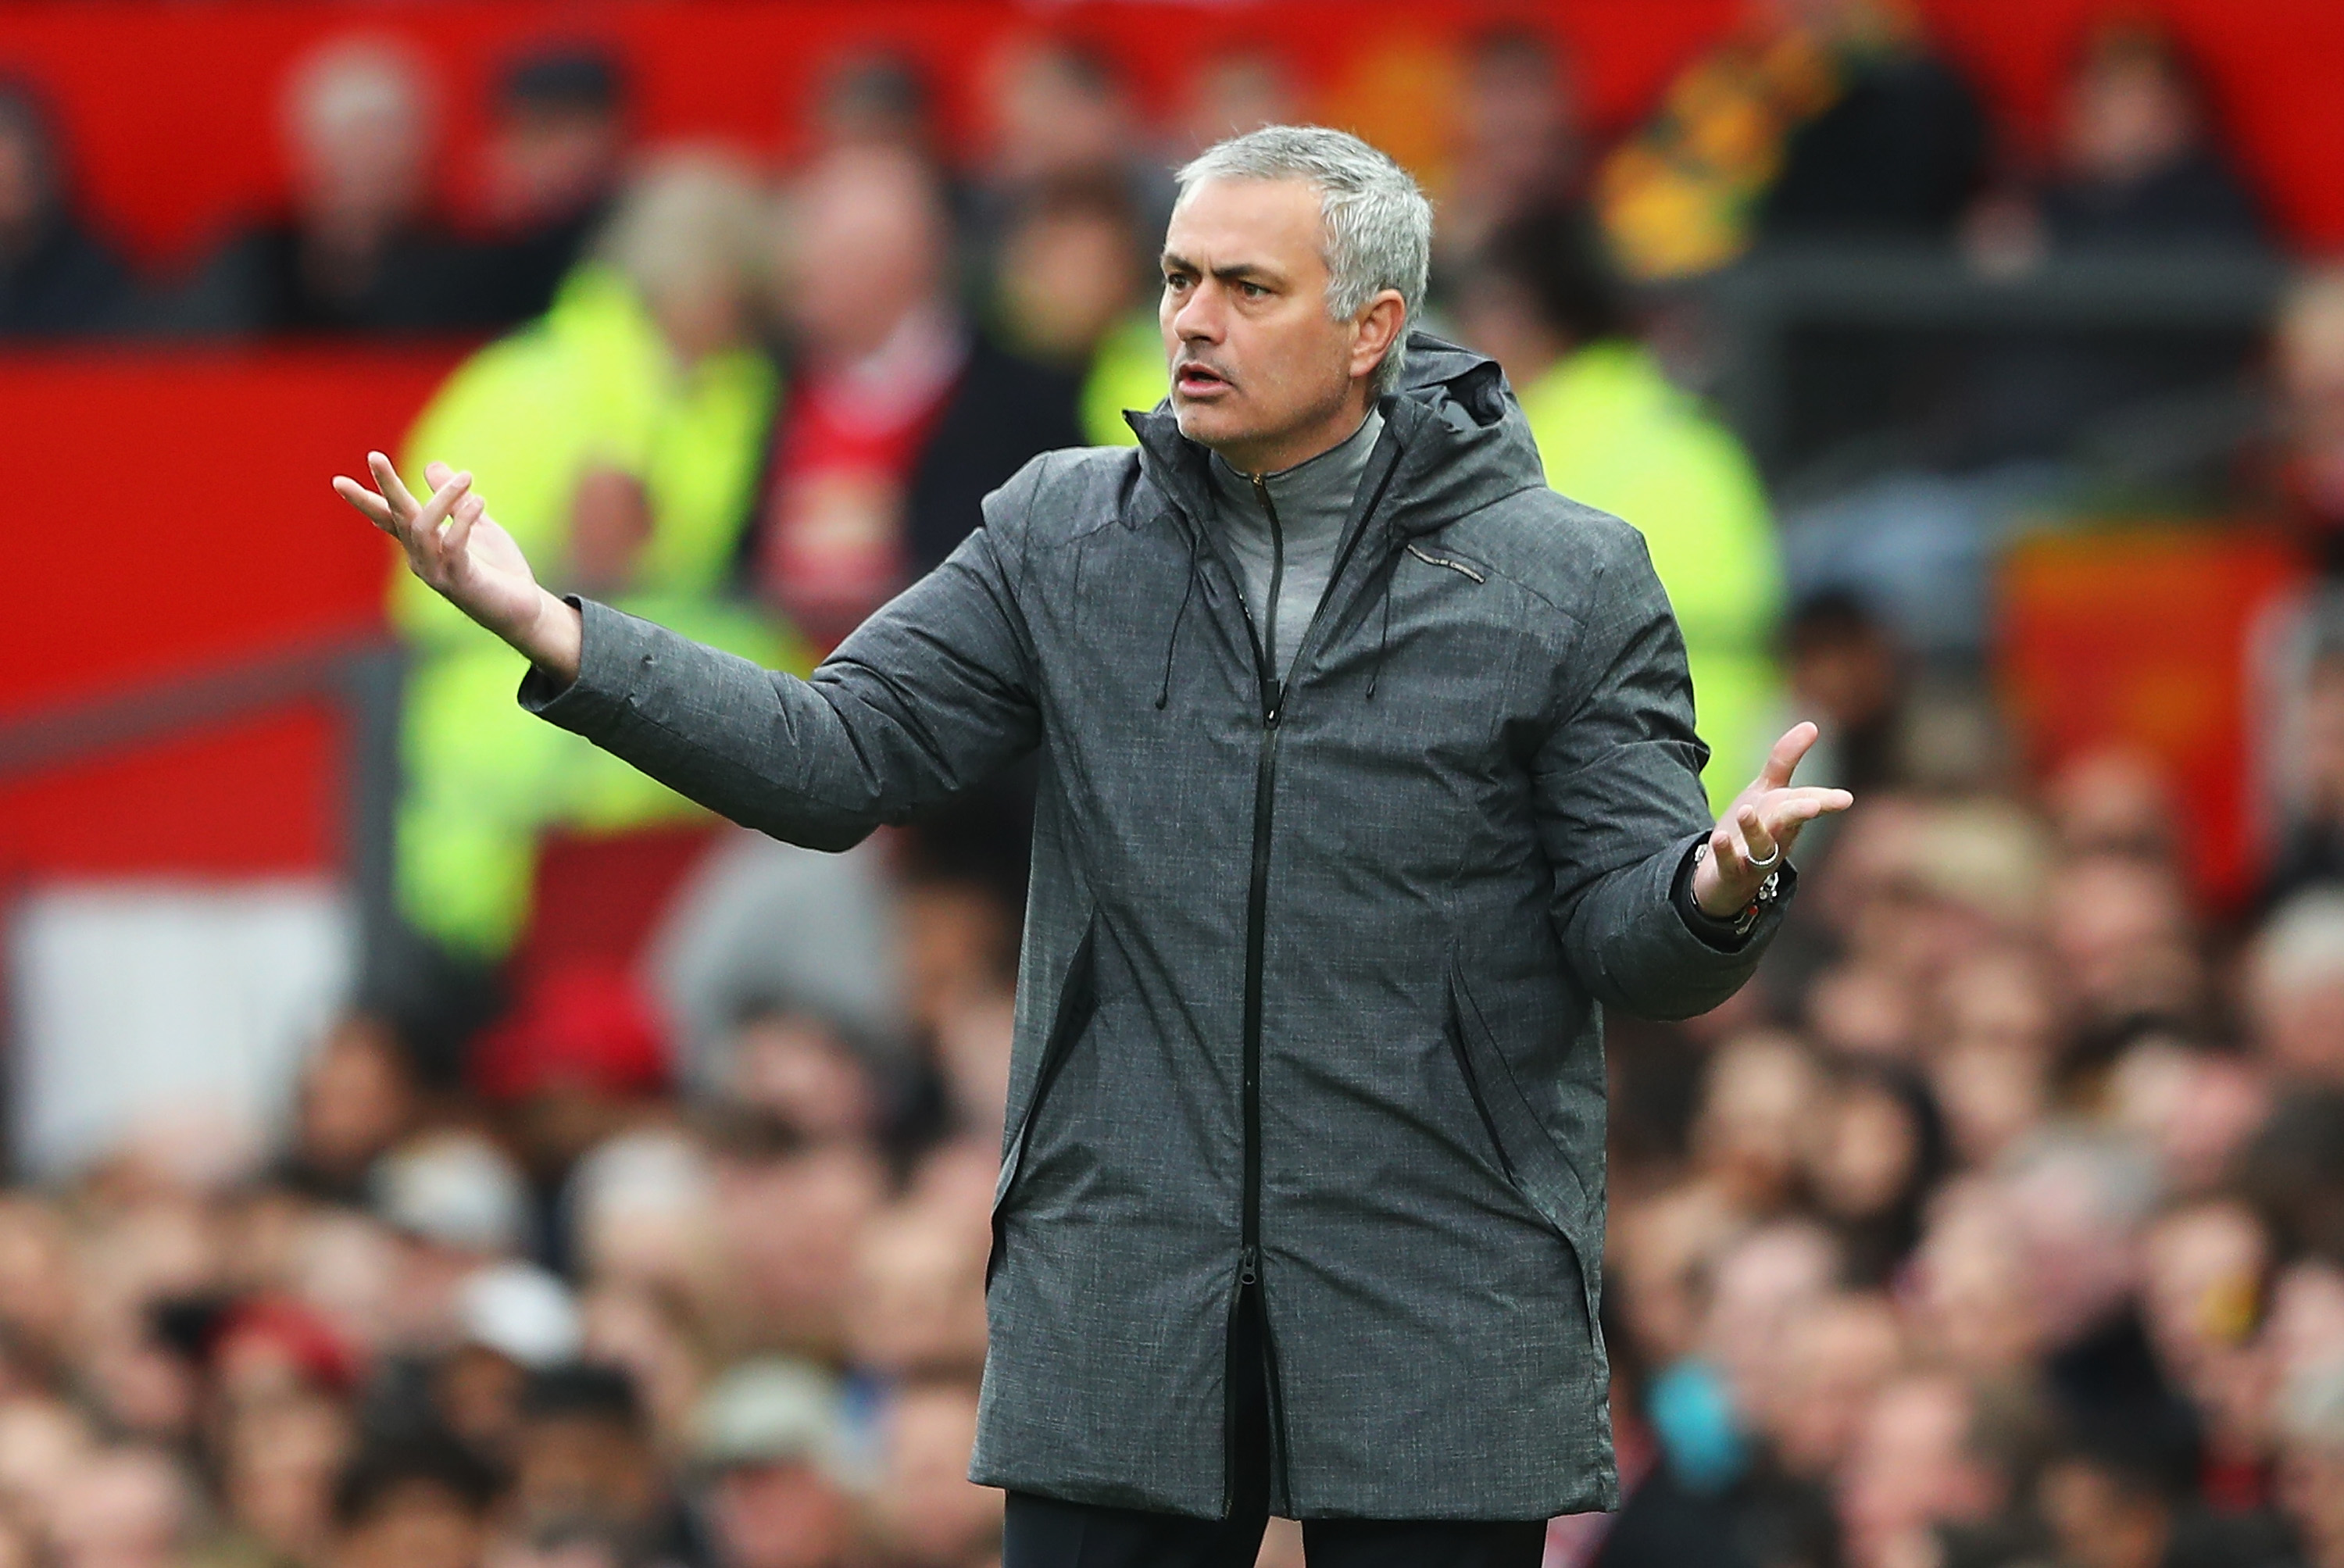 Jose Mourinho (Matt Lewis/Getty Images)